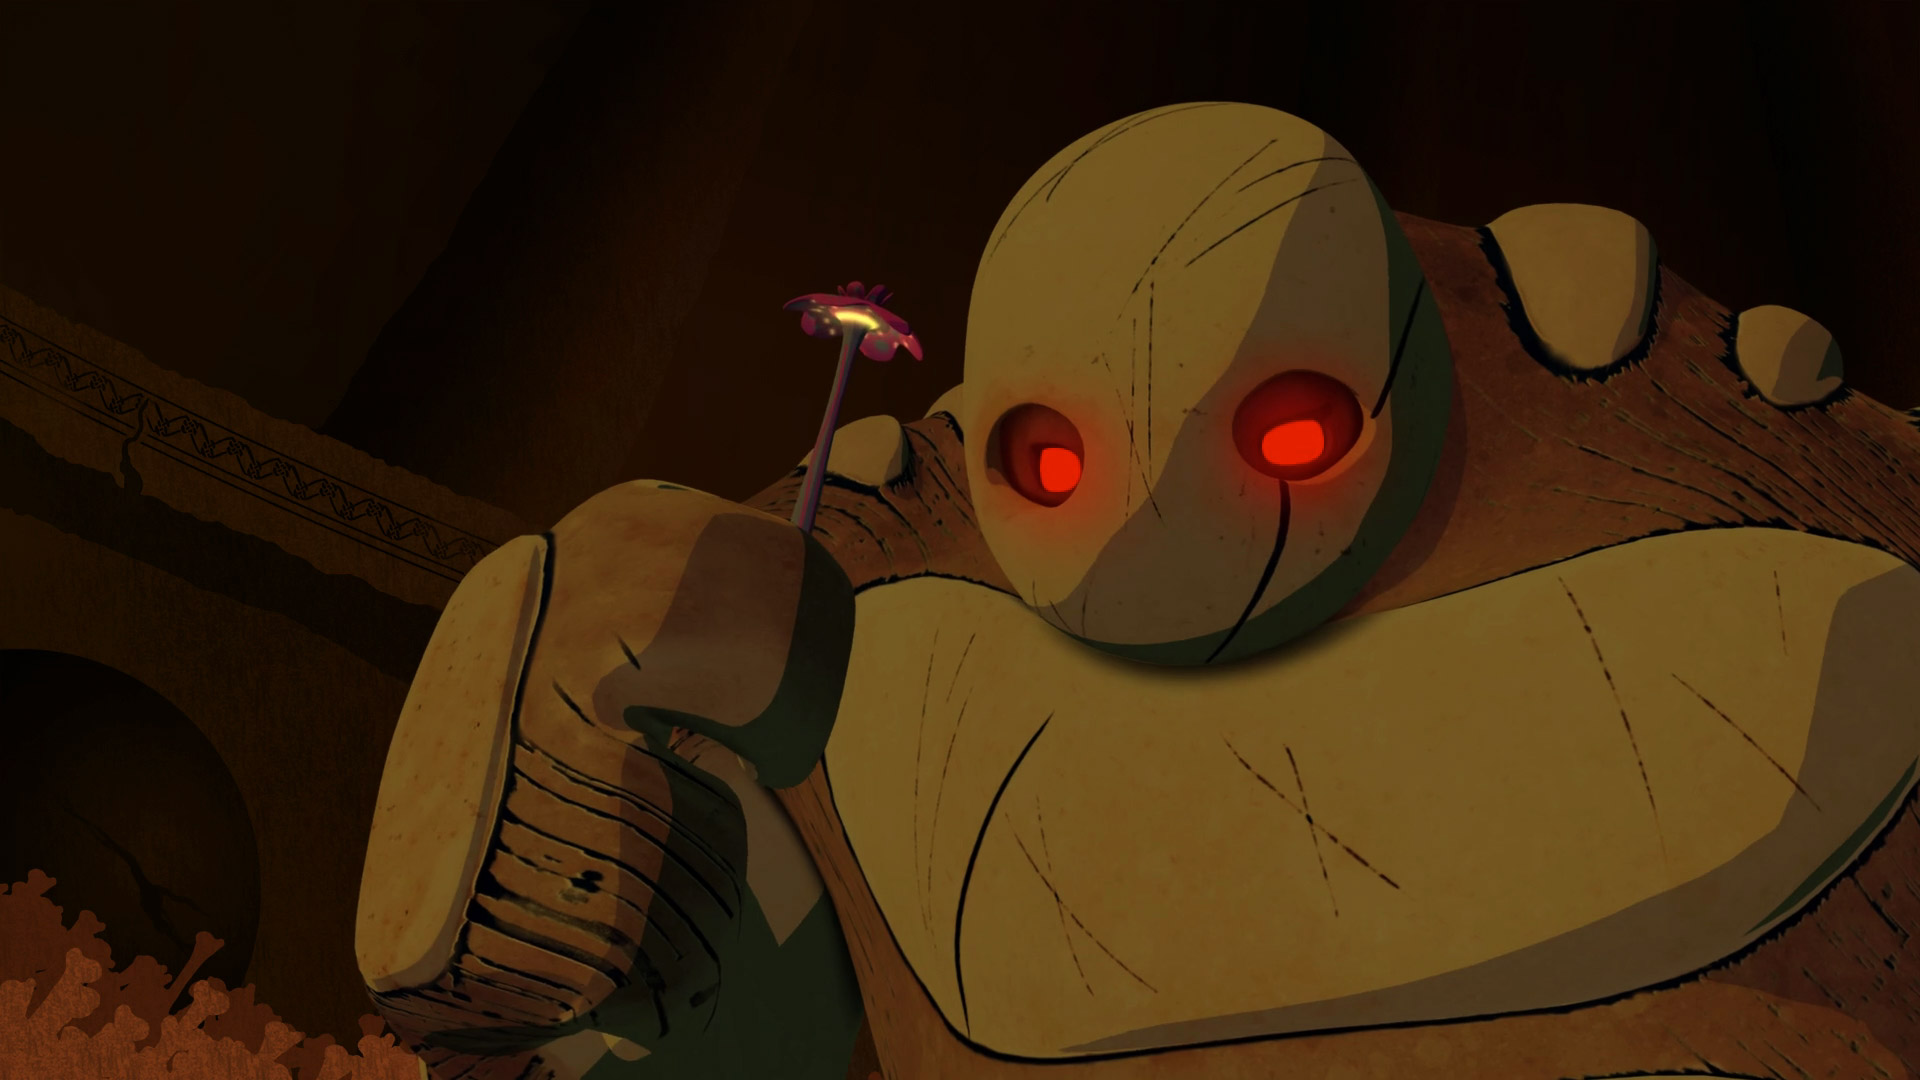 awesome-sci-fi-animated-short-the-guardians-tale-08.jpg